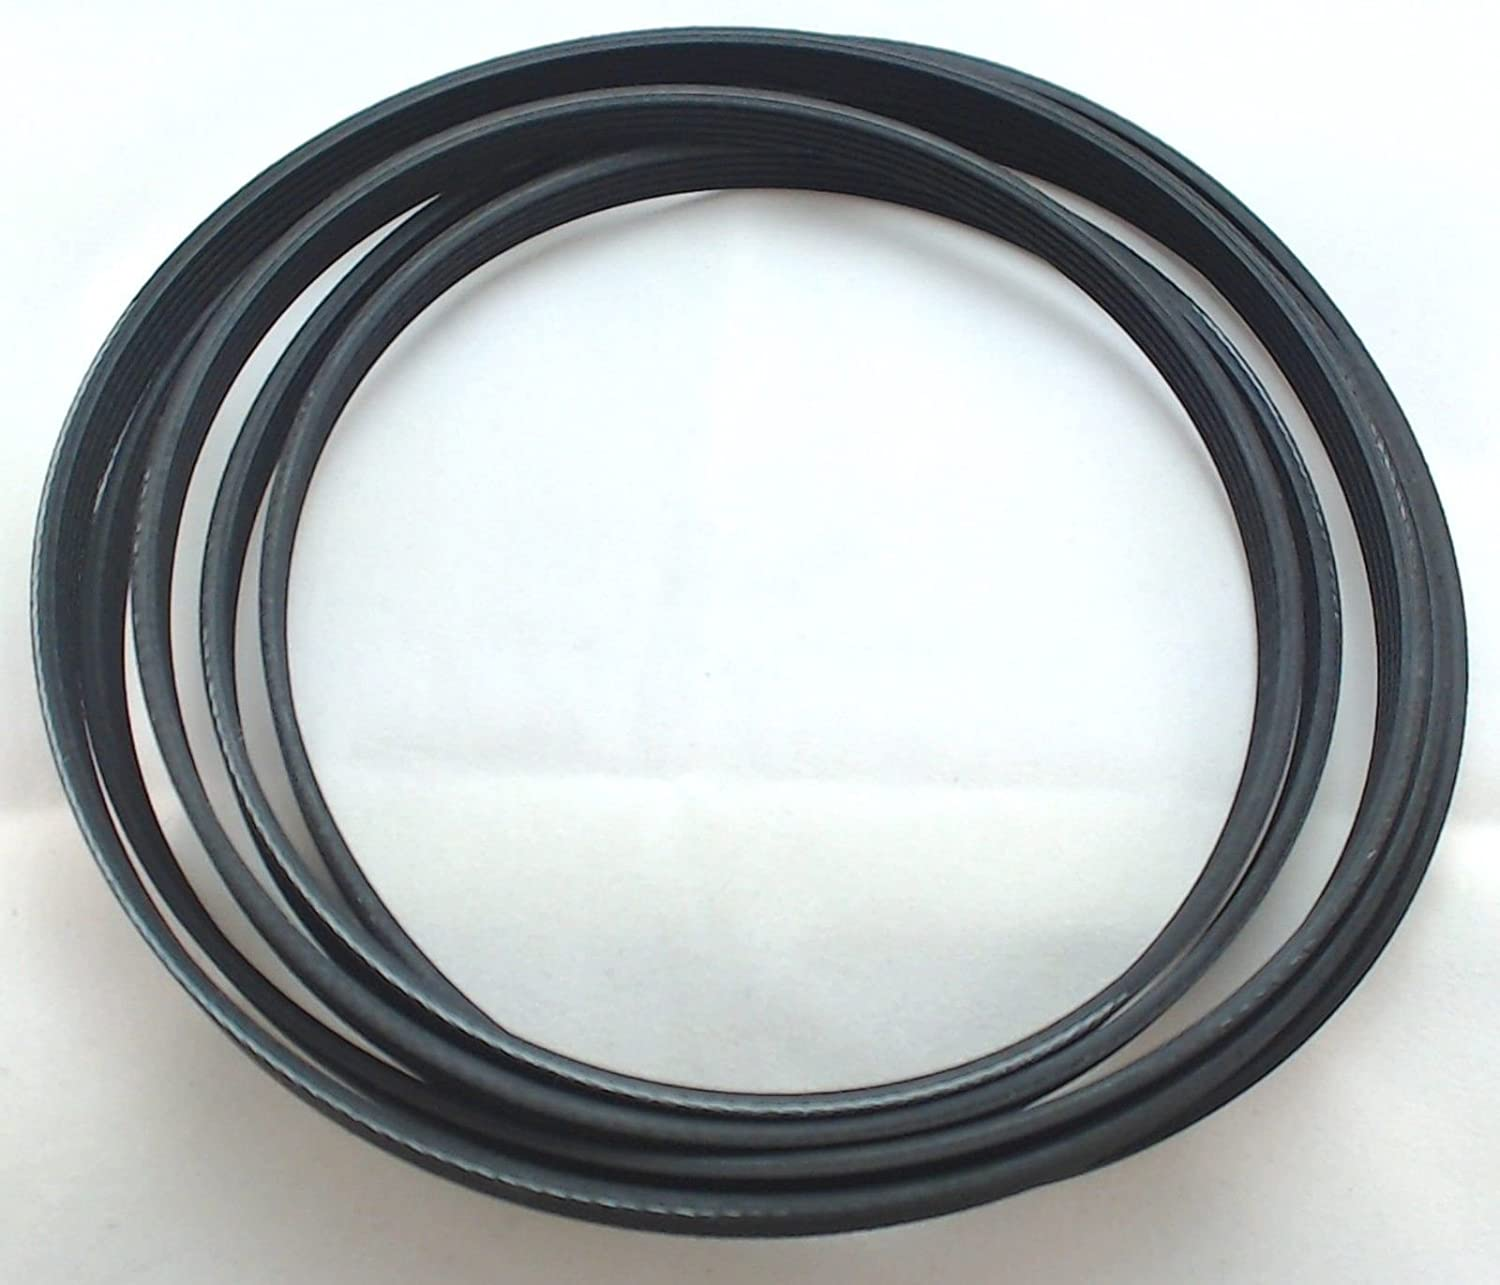 Supplying Demand 134719300 137315300 Dryer Belt Fits Kenmore Fits Frigidaire